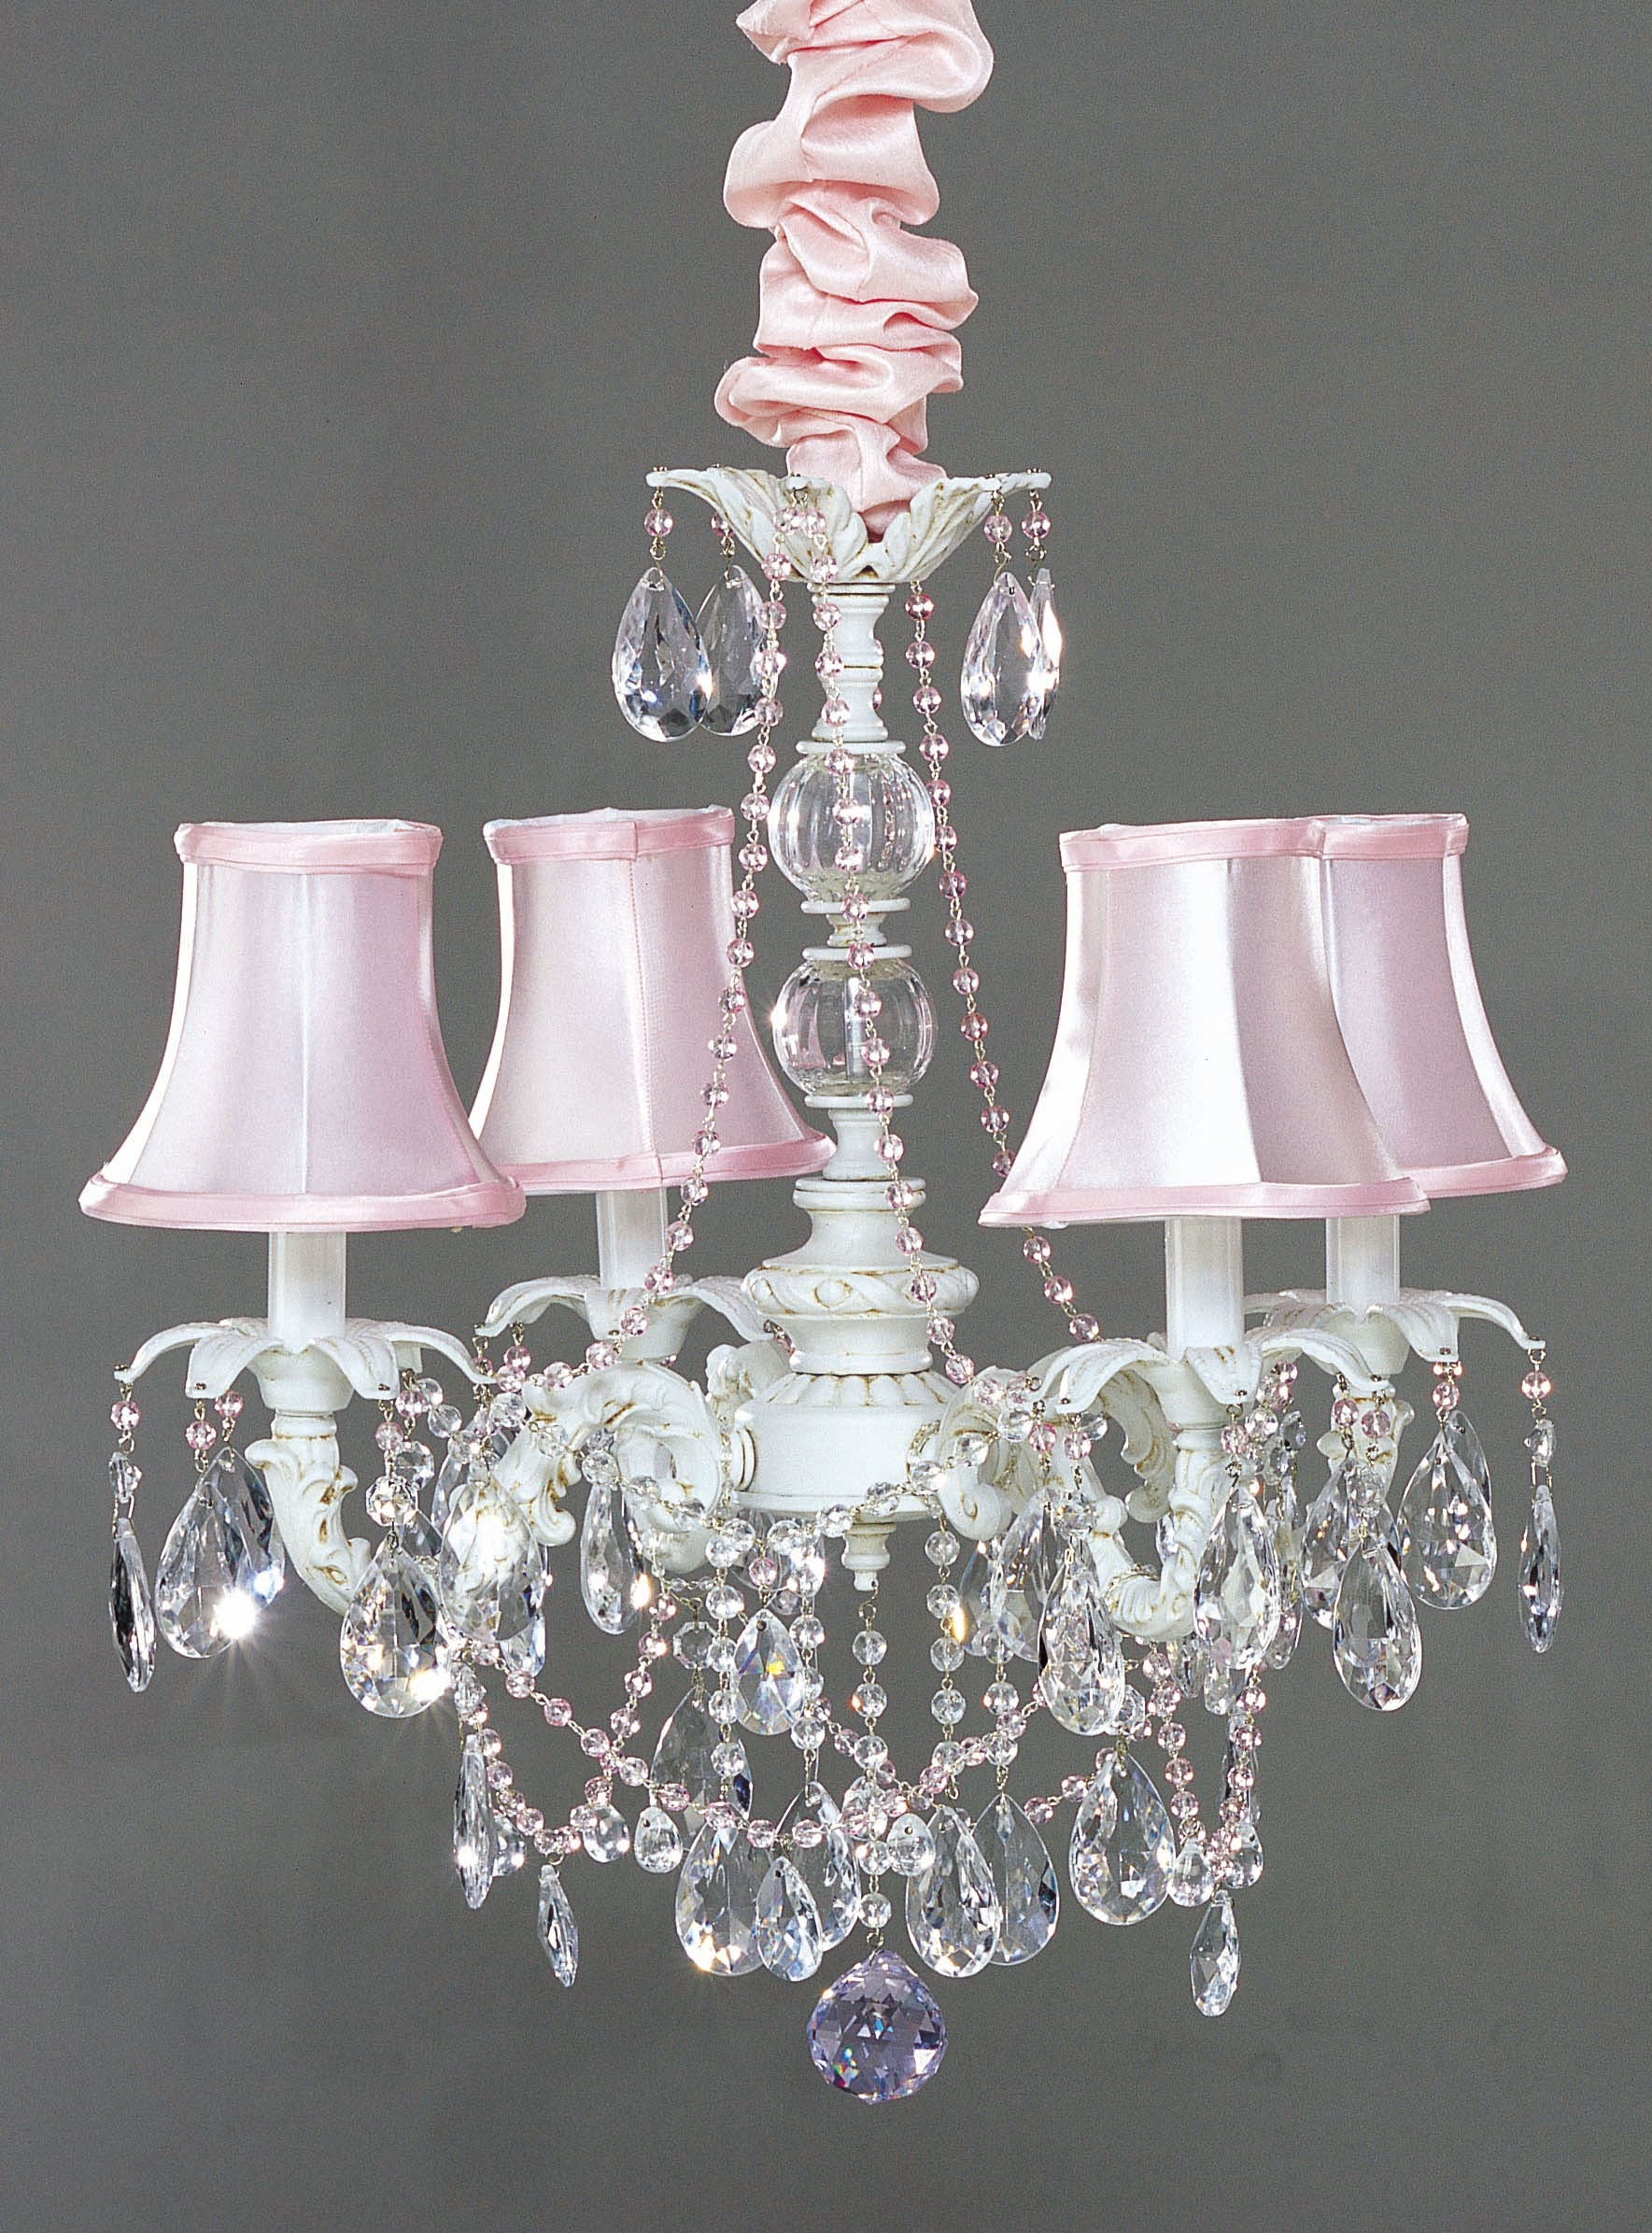 Shab Chic Chandelier Best For Your Interior Decor Home With With Regard To Small Shabby Chic Chandelier (#11 of 12)